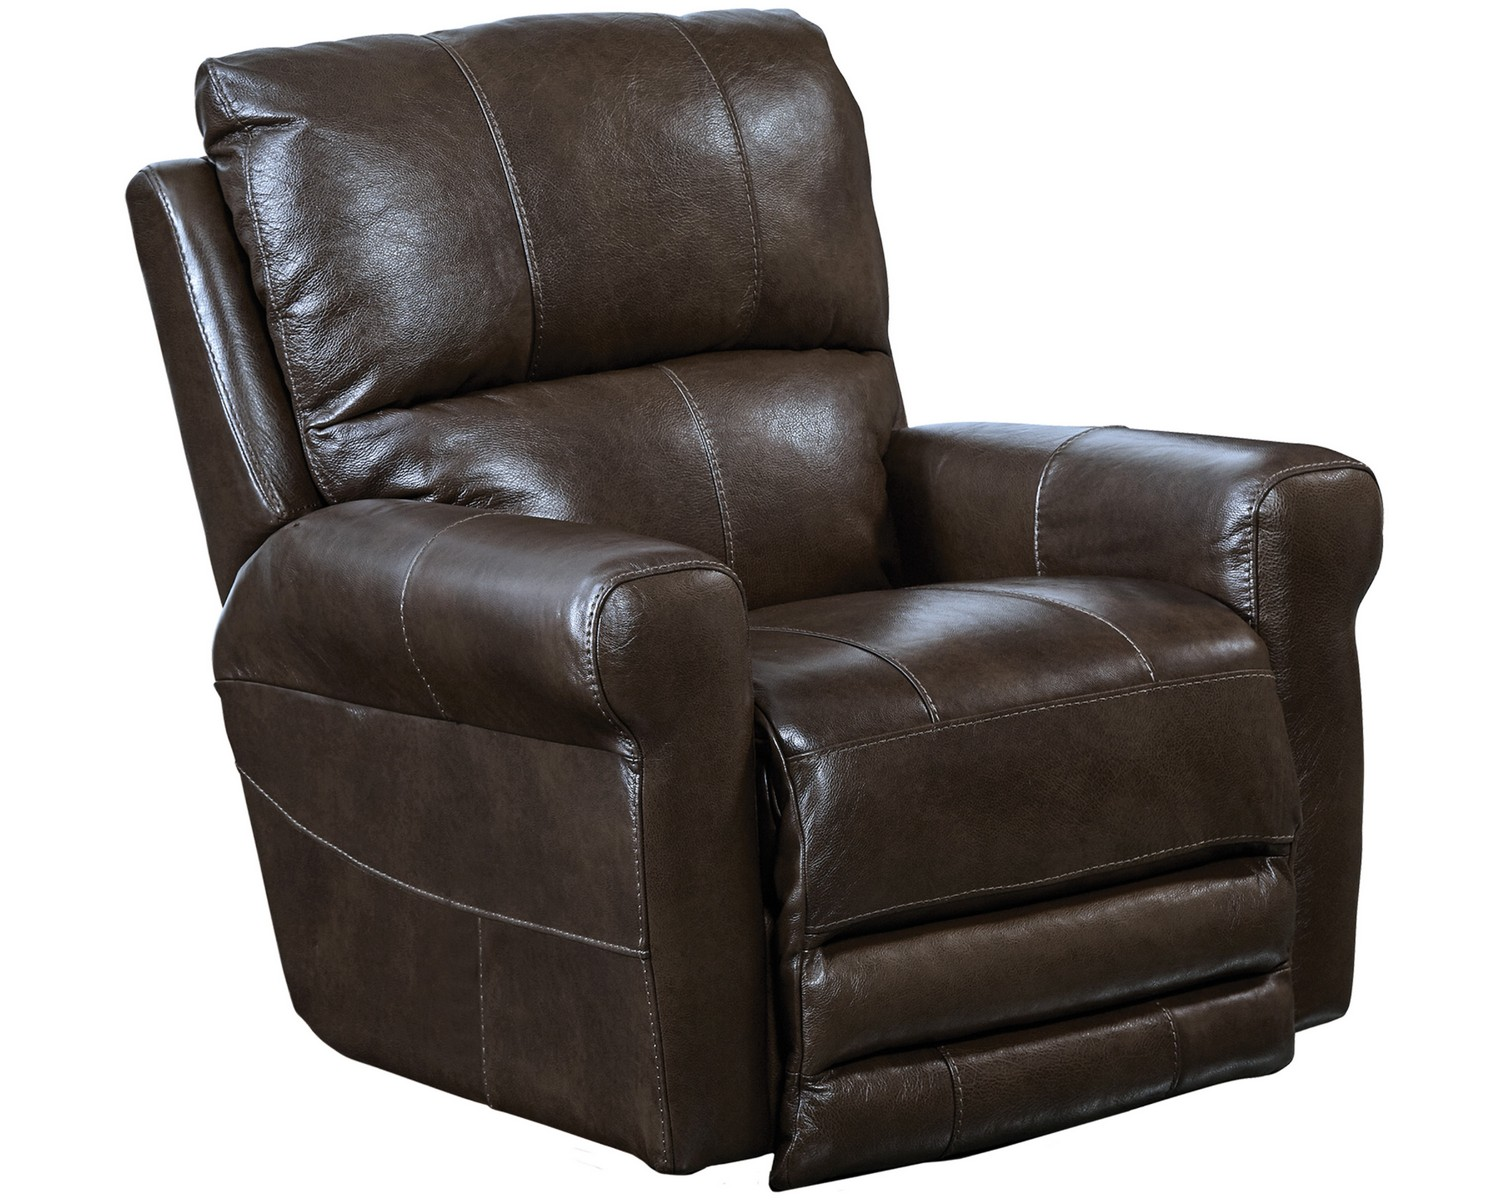 CatNapper Hoffner Top Grain Leather Touch Power Lay Flat Recliner - Chocolate